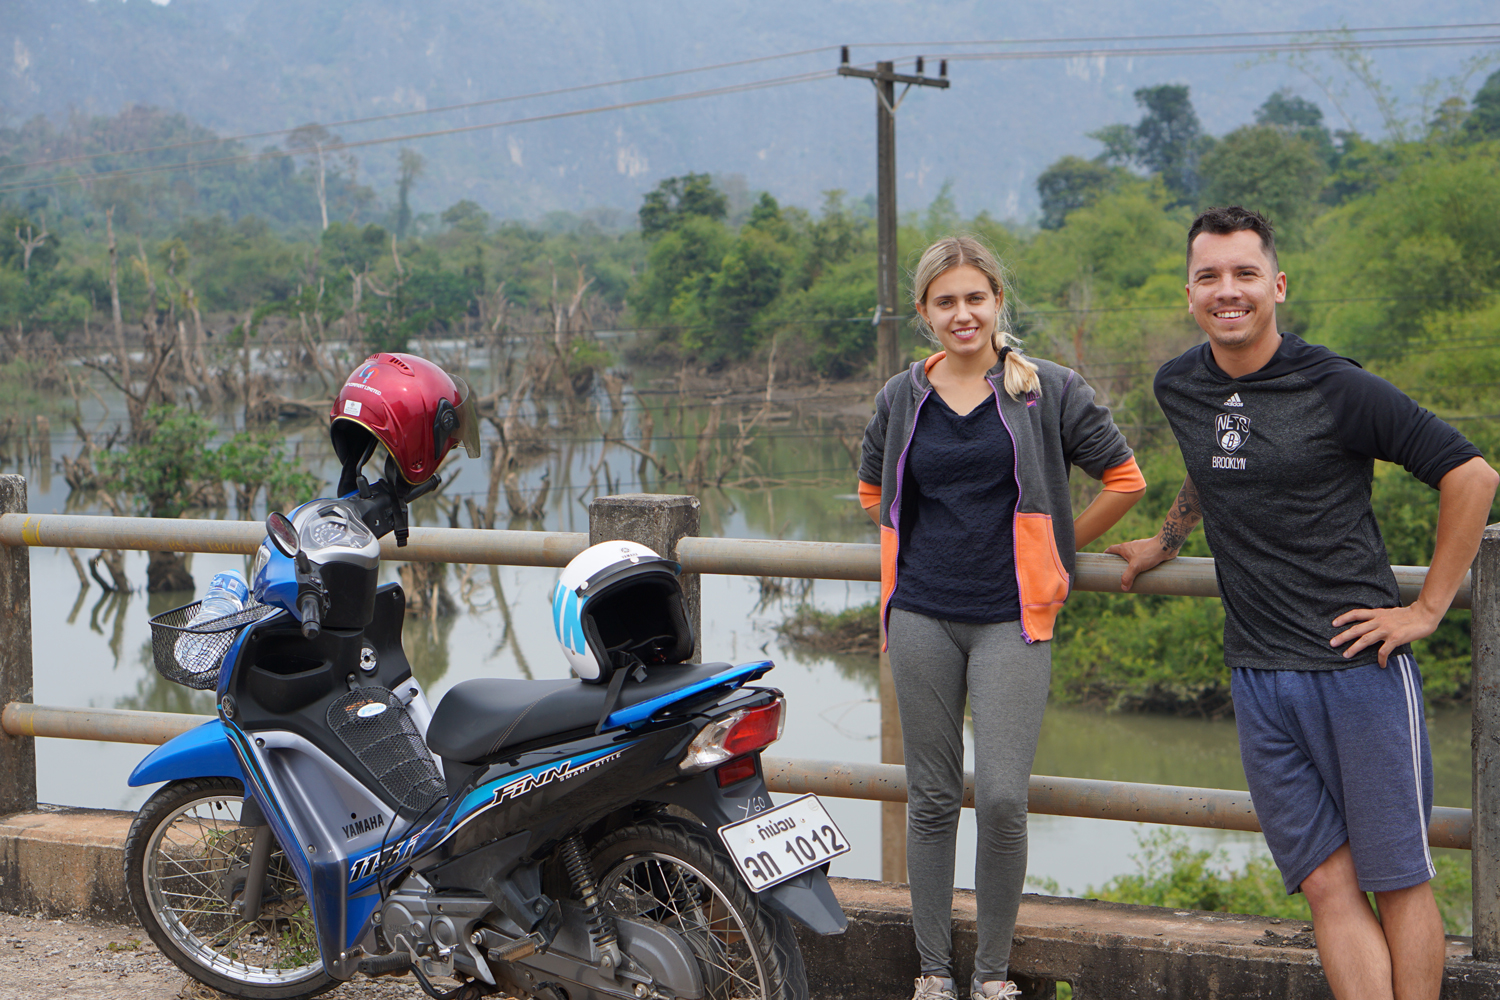 Thakhek Bike Loop Laos